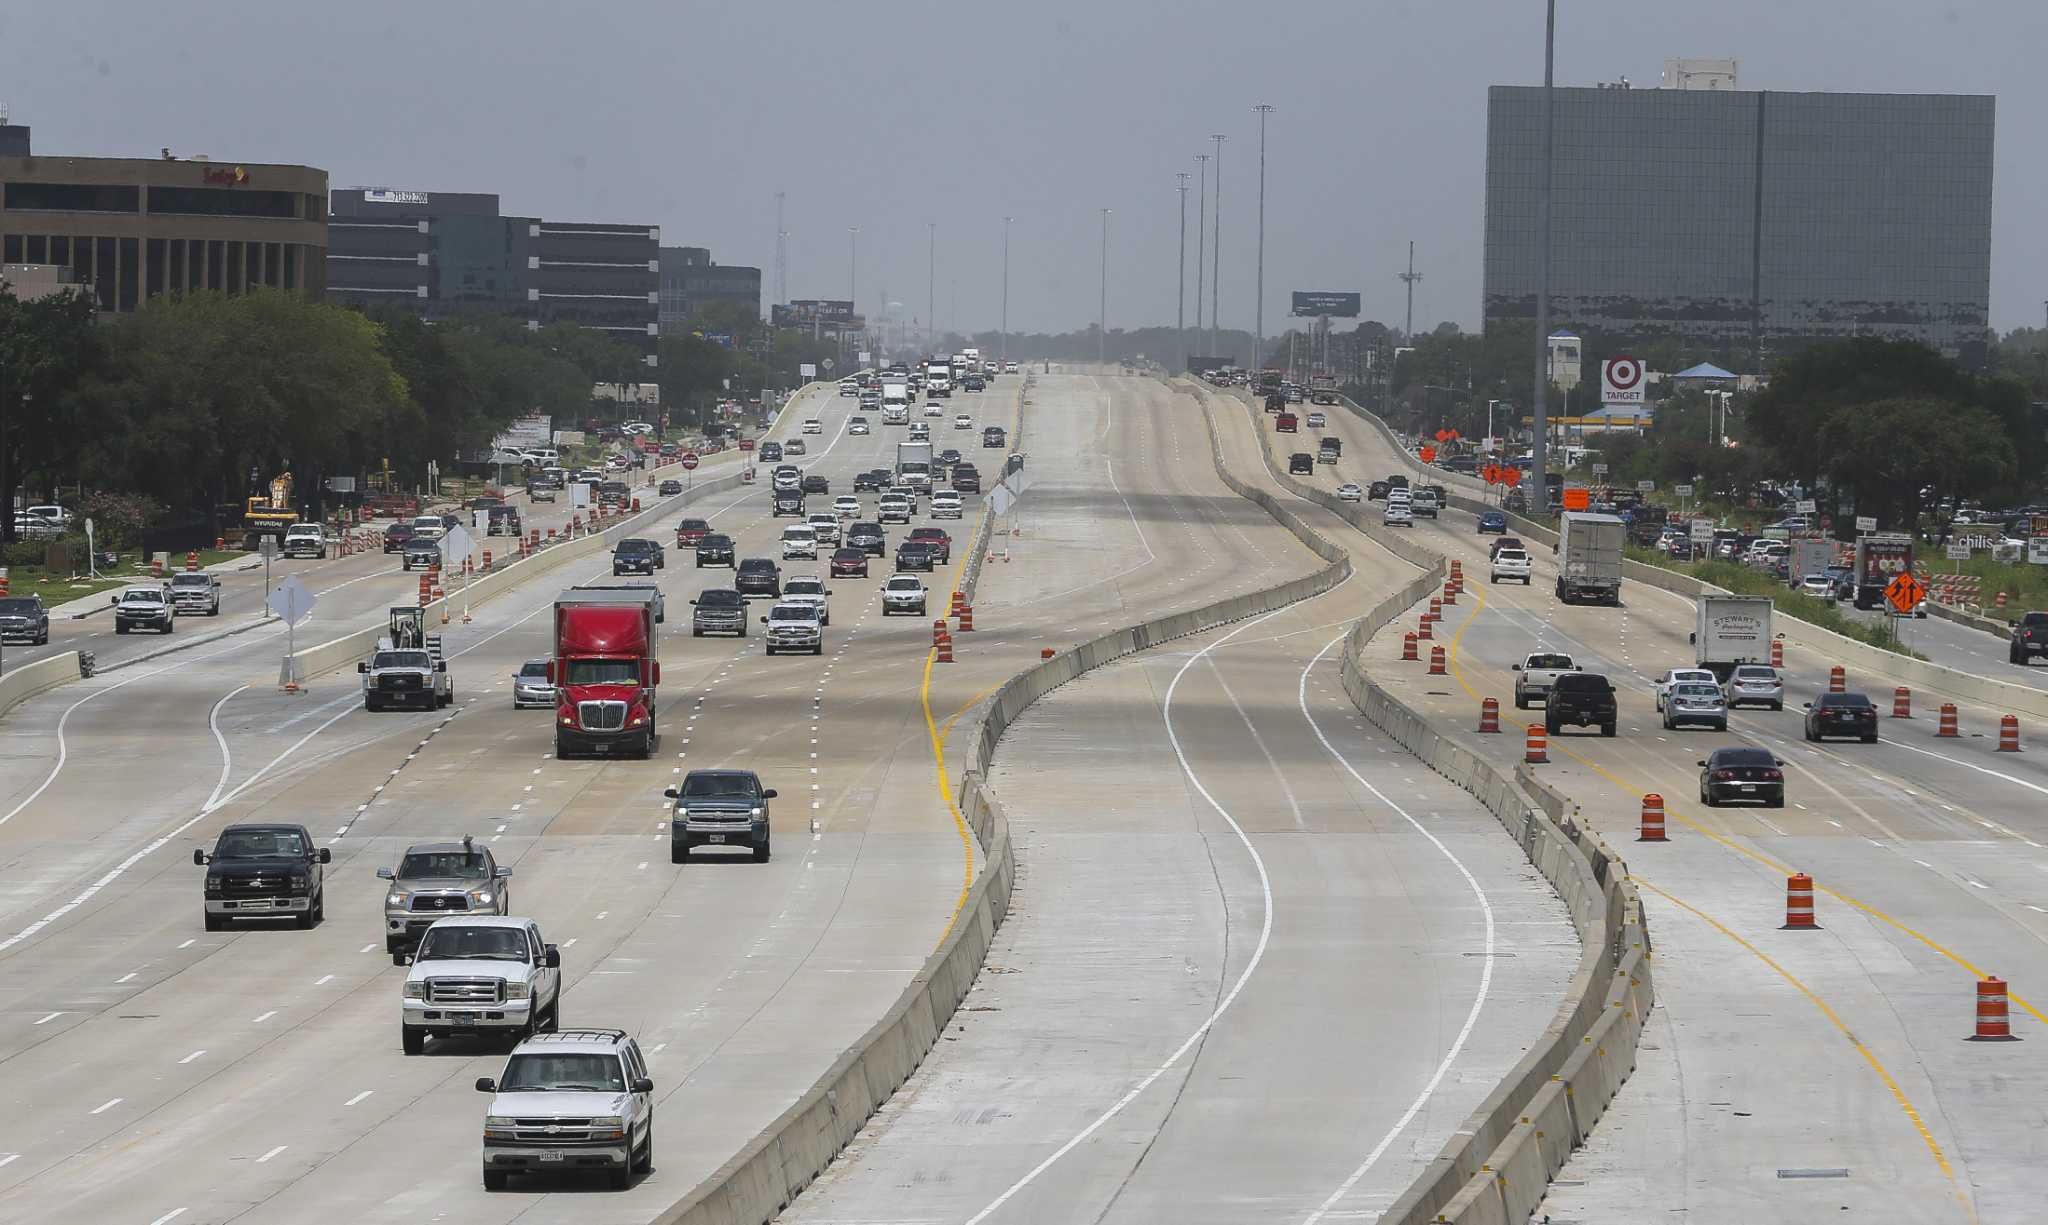 Seven more miles of the U.S. 290 HOT lane open Monday